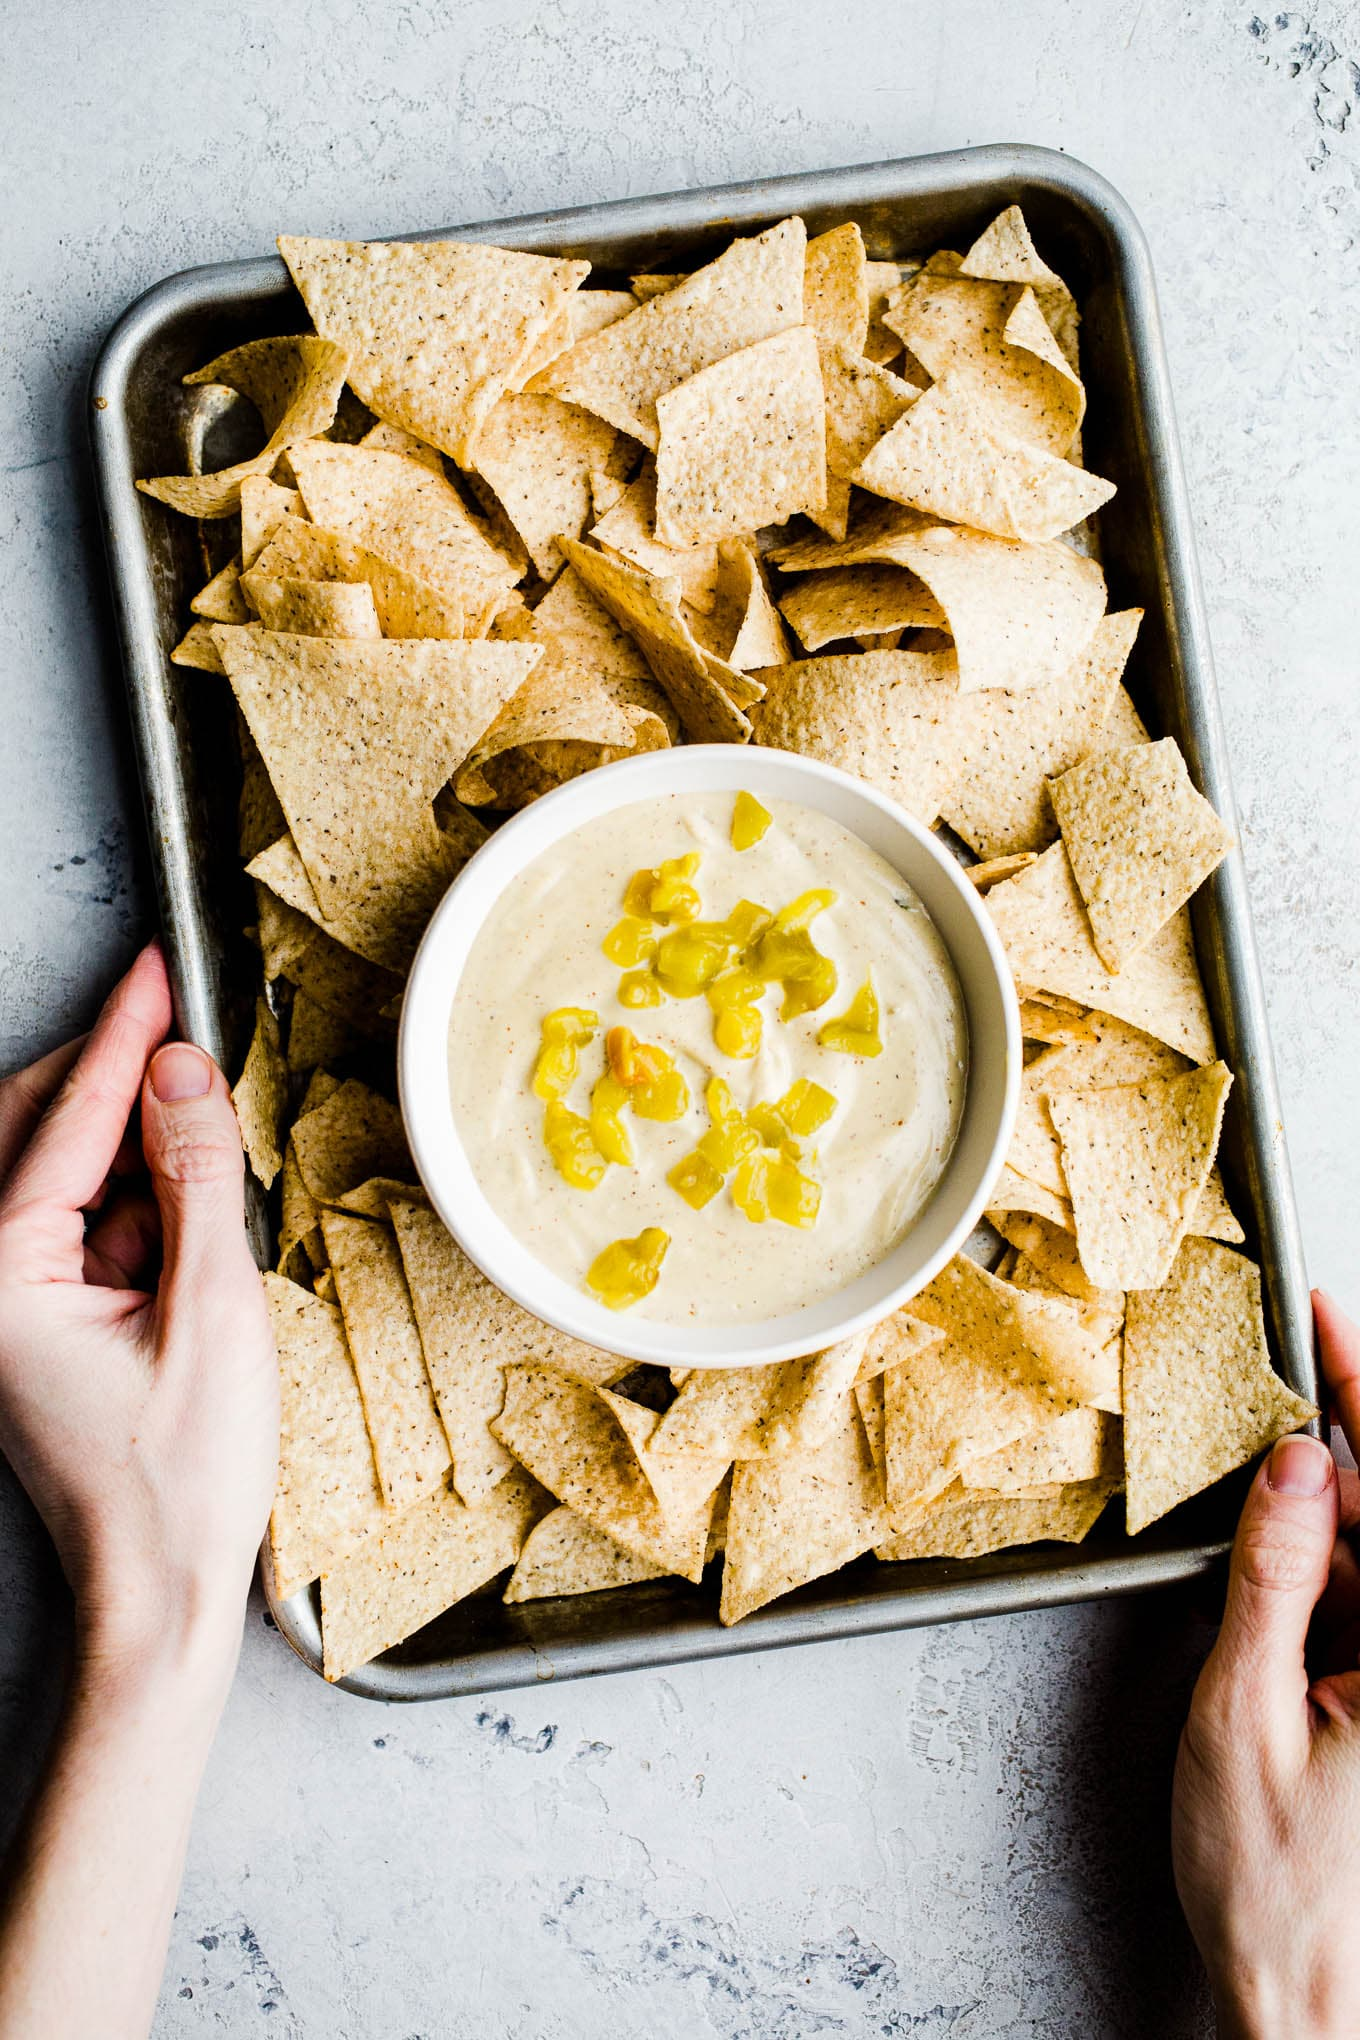 Vegan queso blanco with hatch chilis in bowl